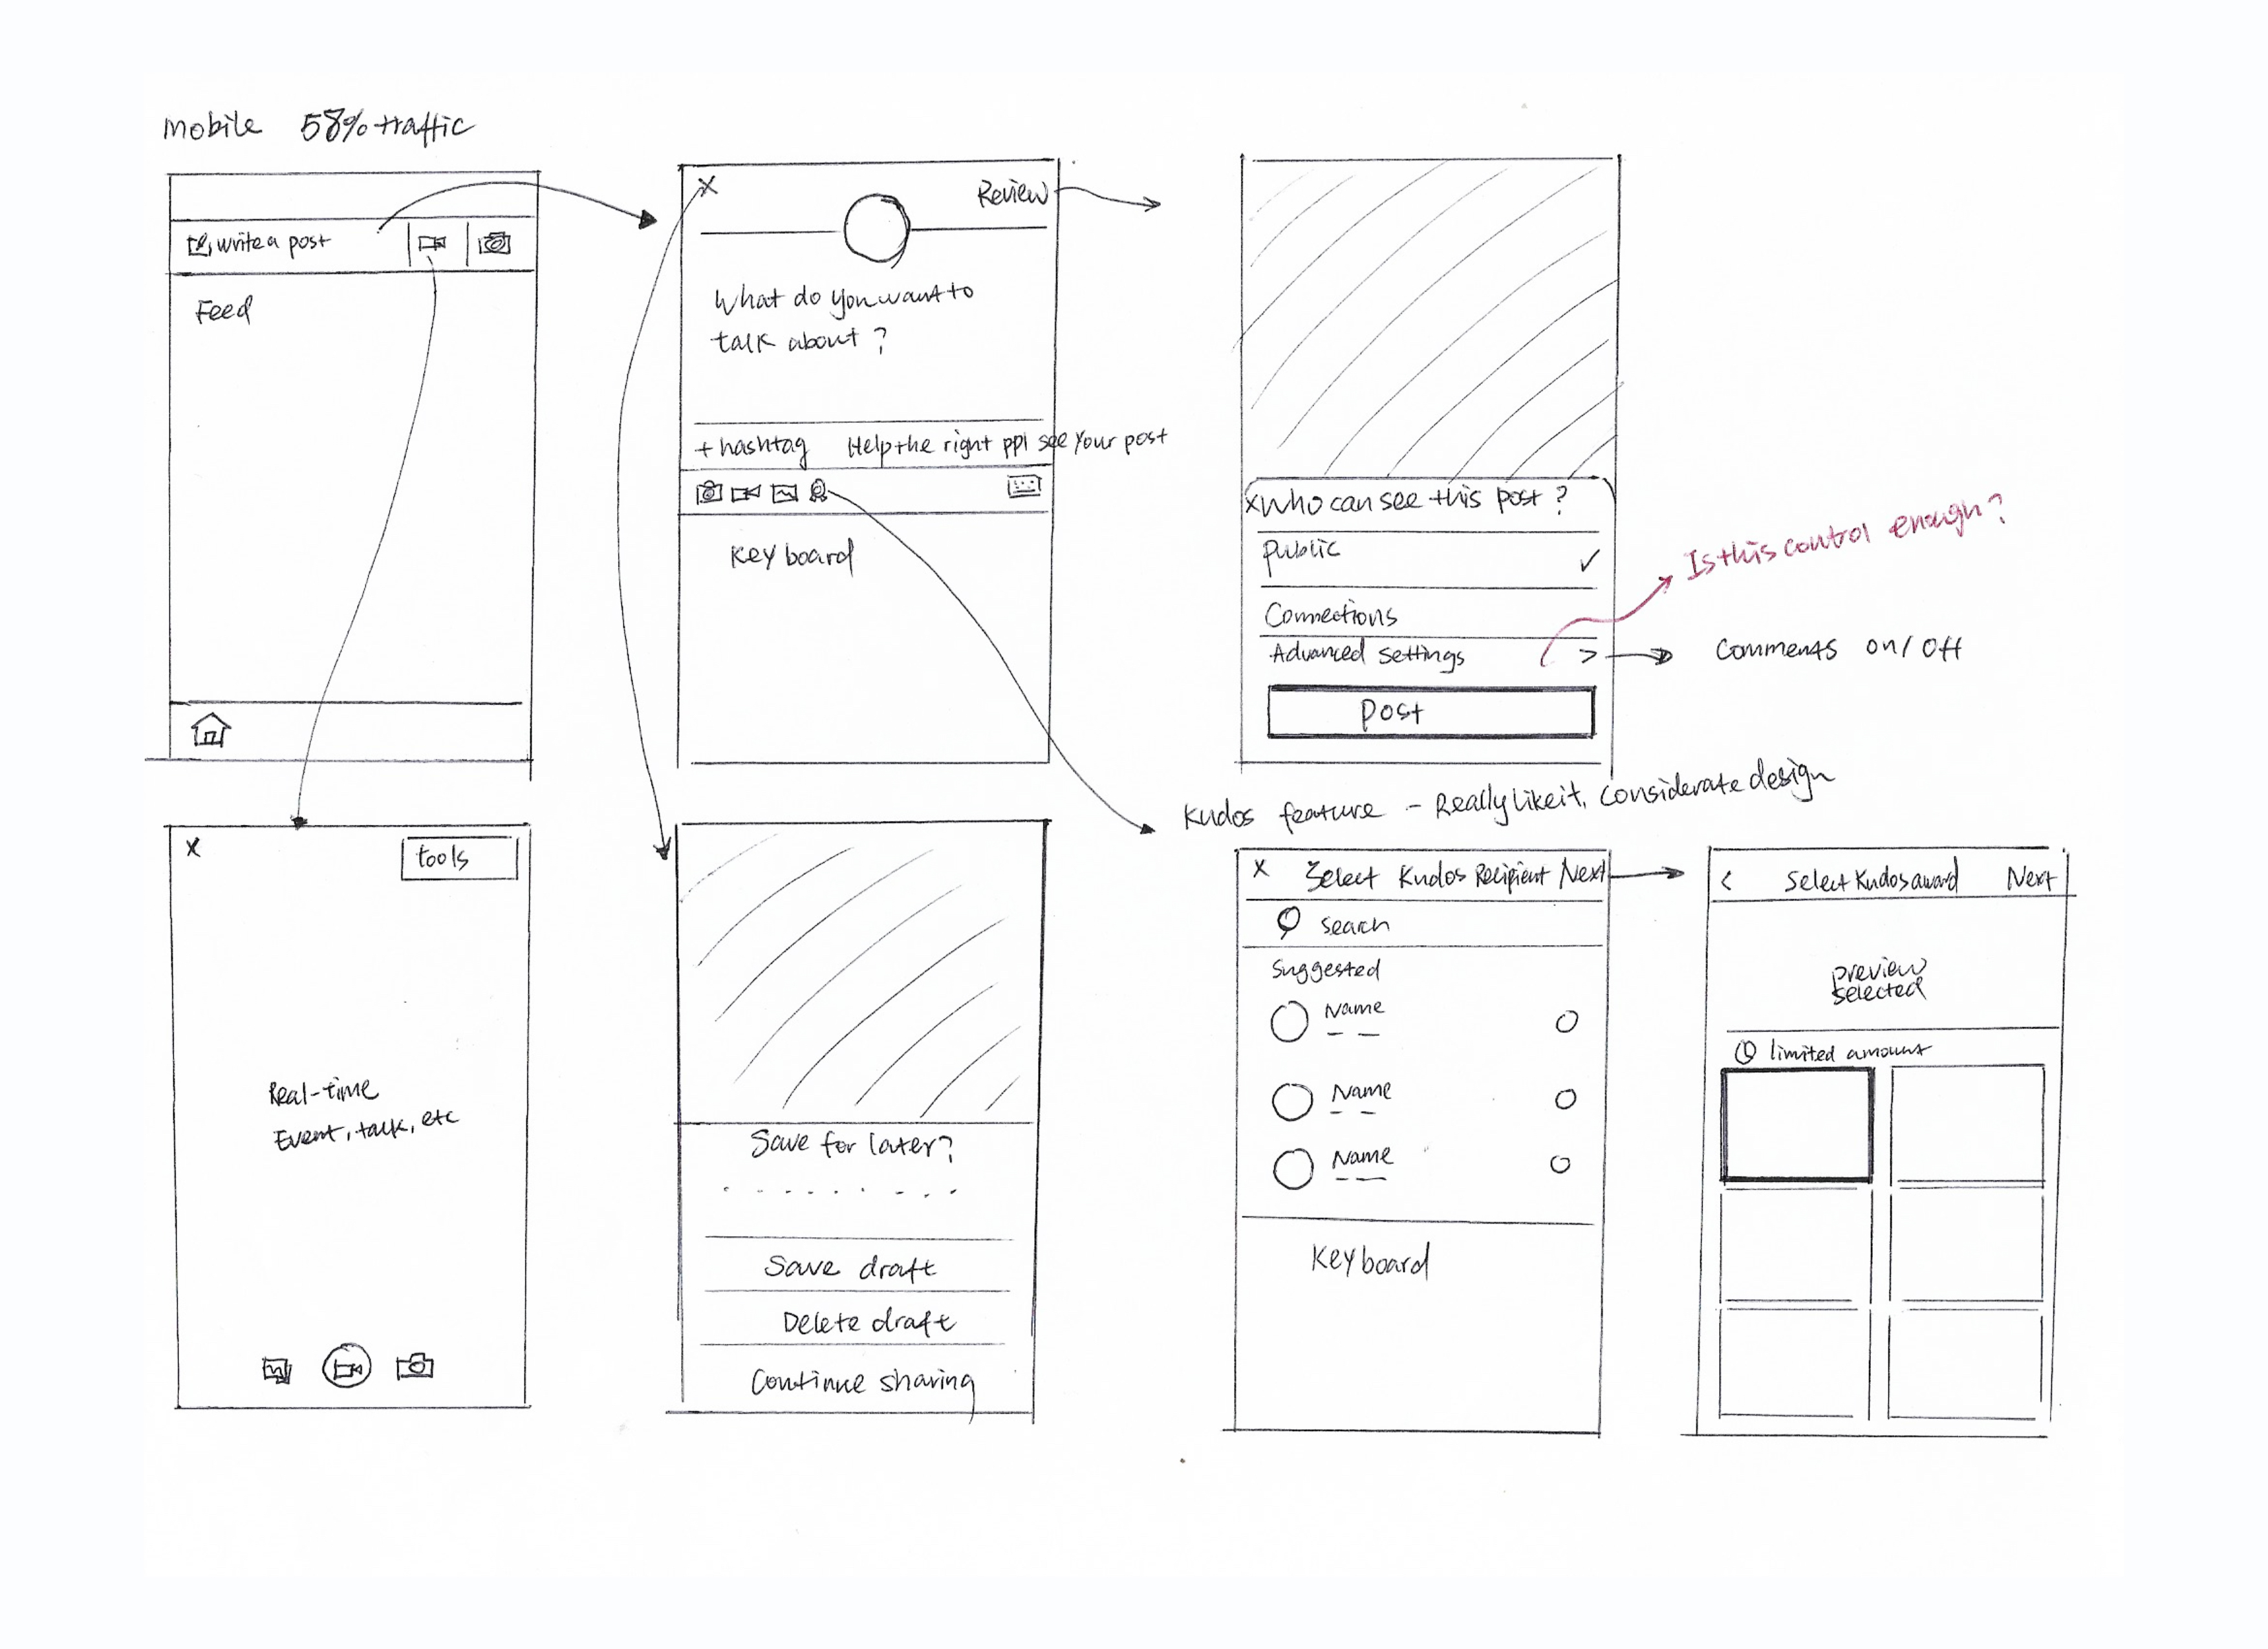 Mobile_flow_UX_audit